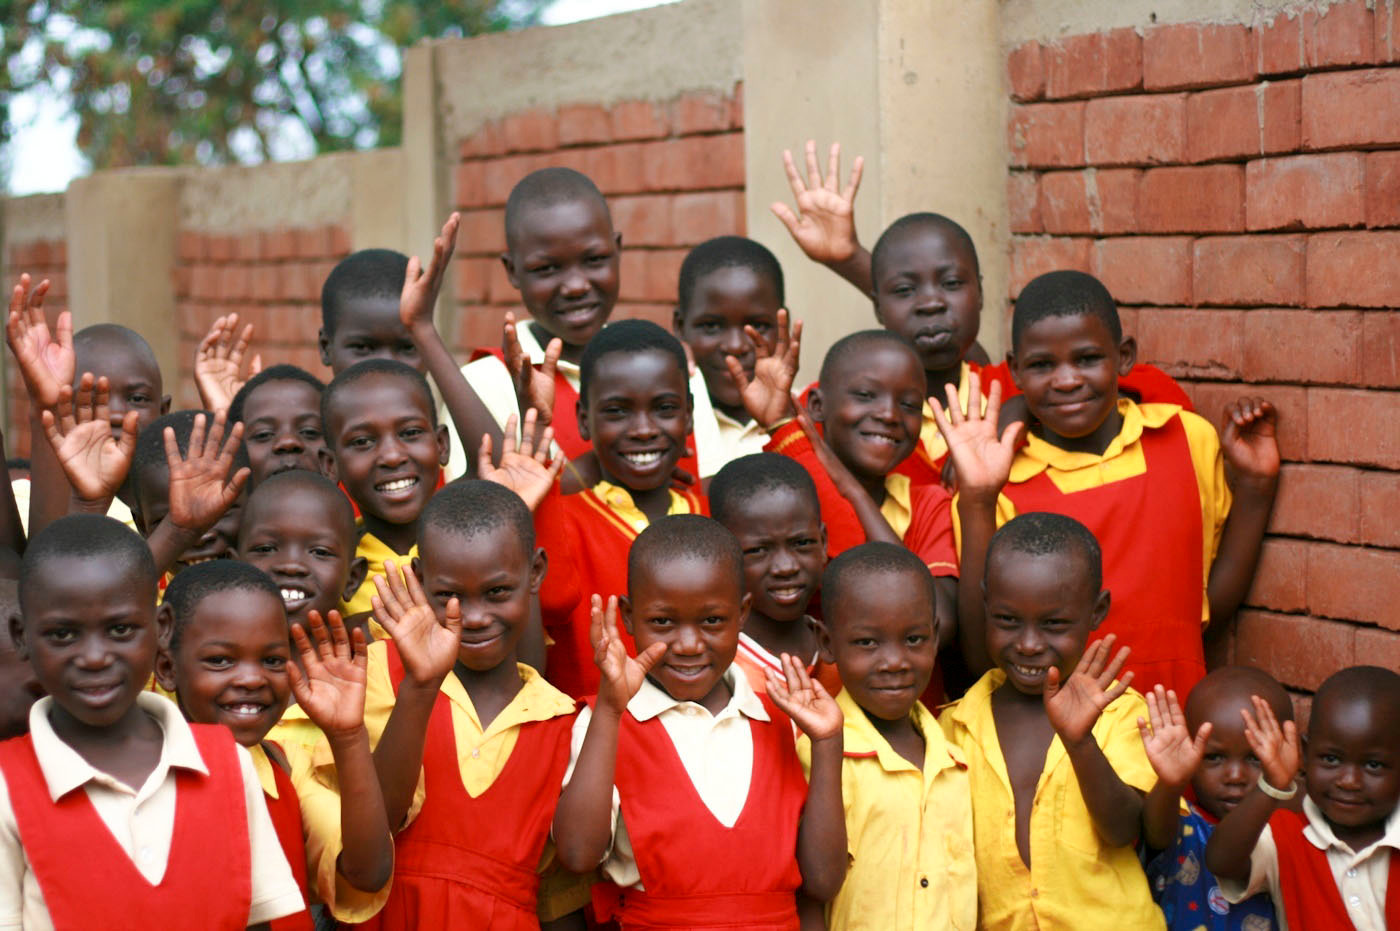 HELP International has aided in feeding and educating children in Uganda.